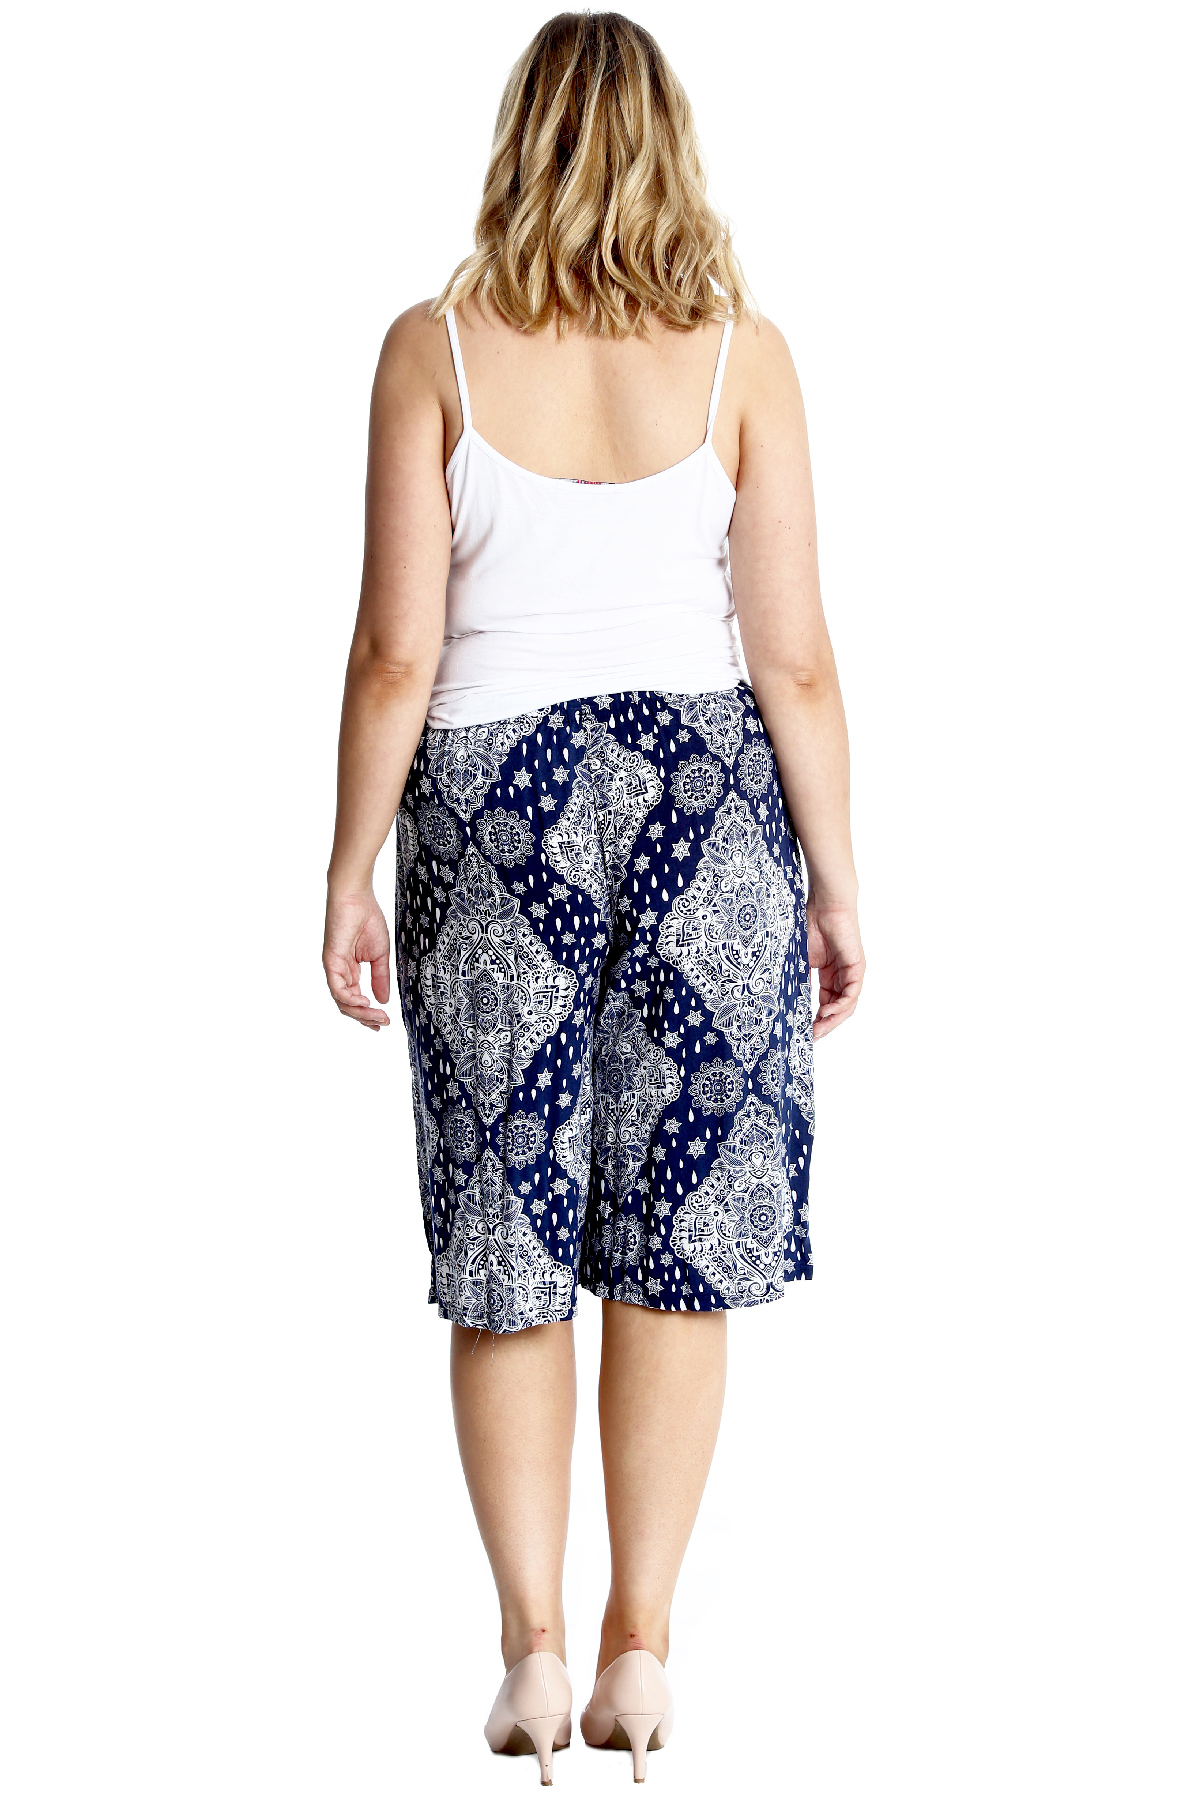 New Womens Plus Size Culottes Ladies Shorts Moroccan Tile Print Knee Length